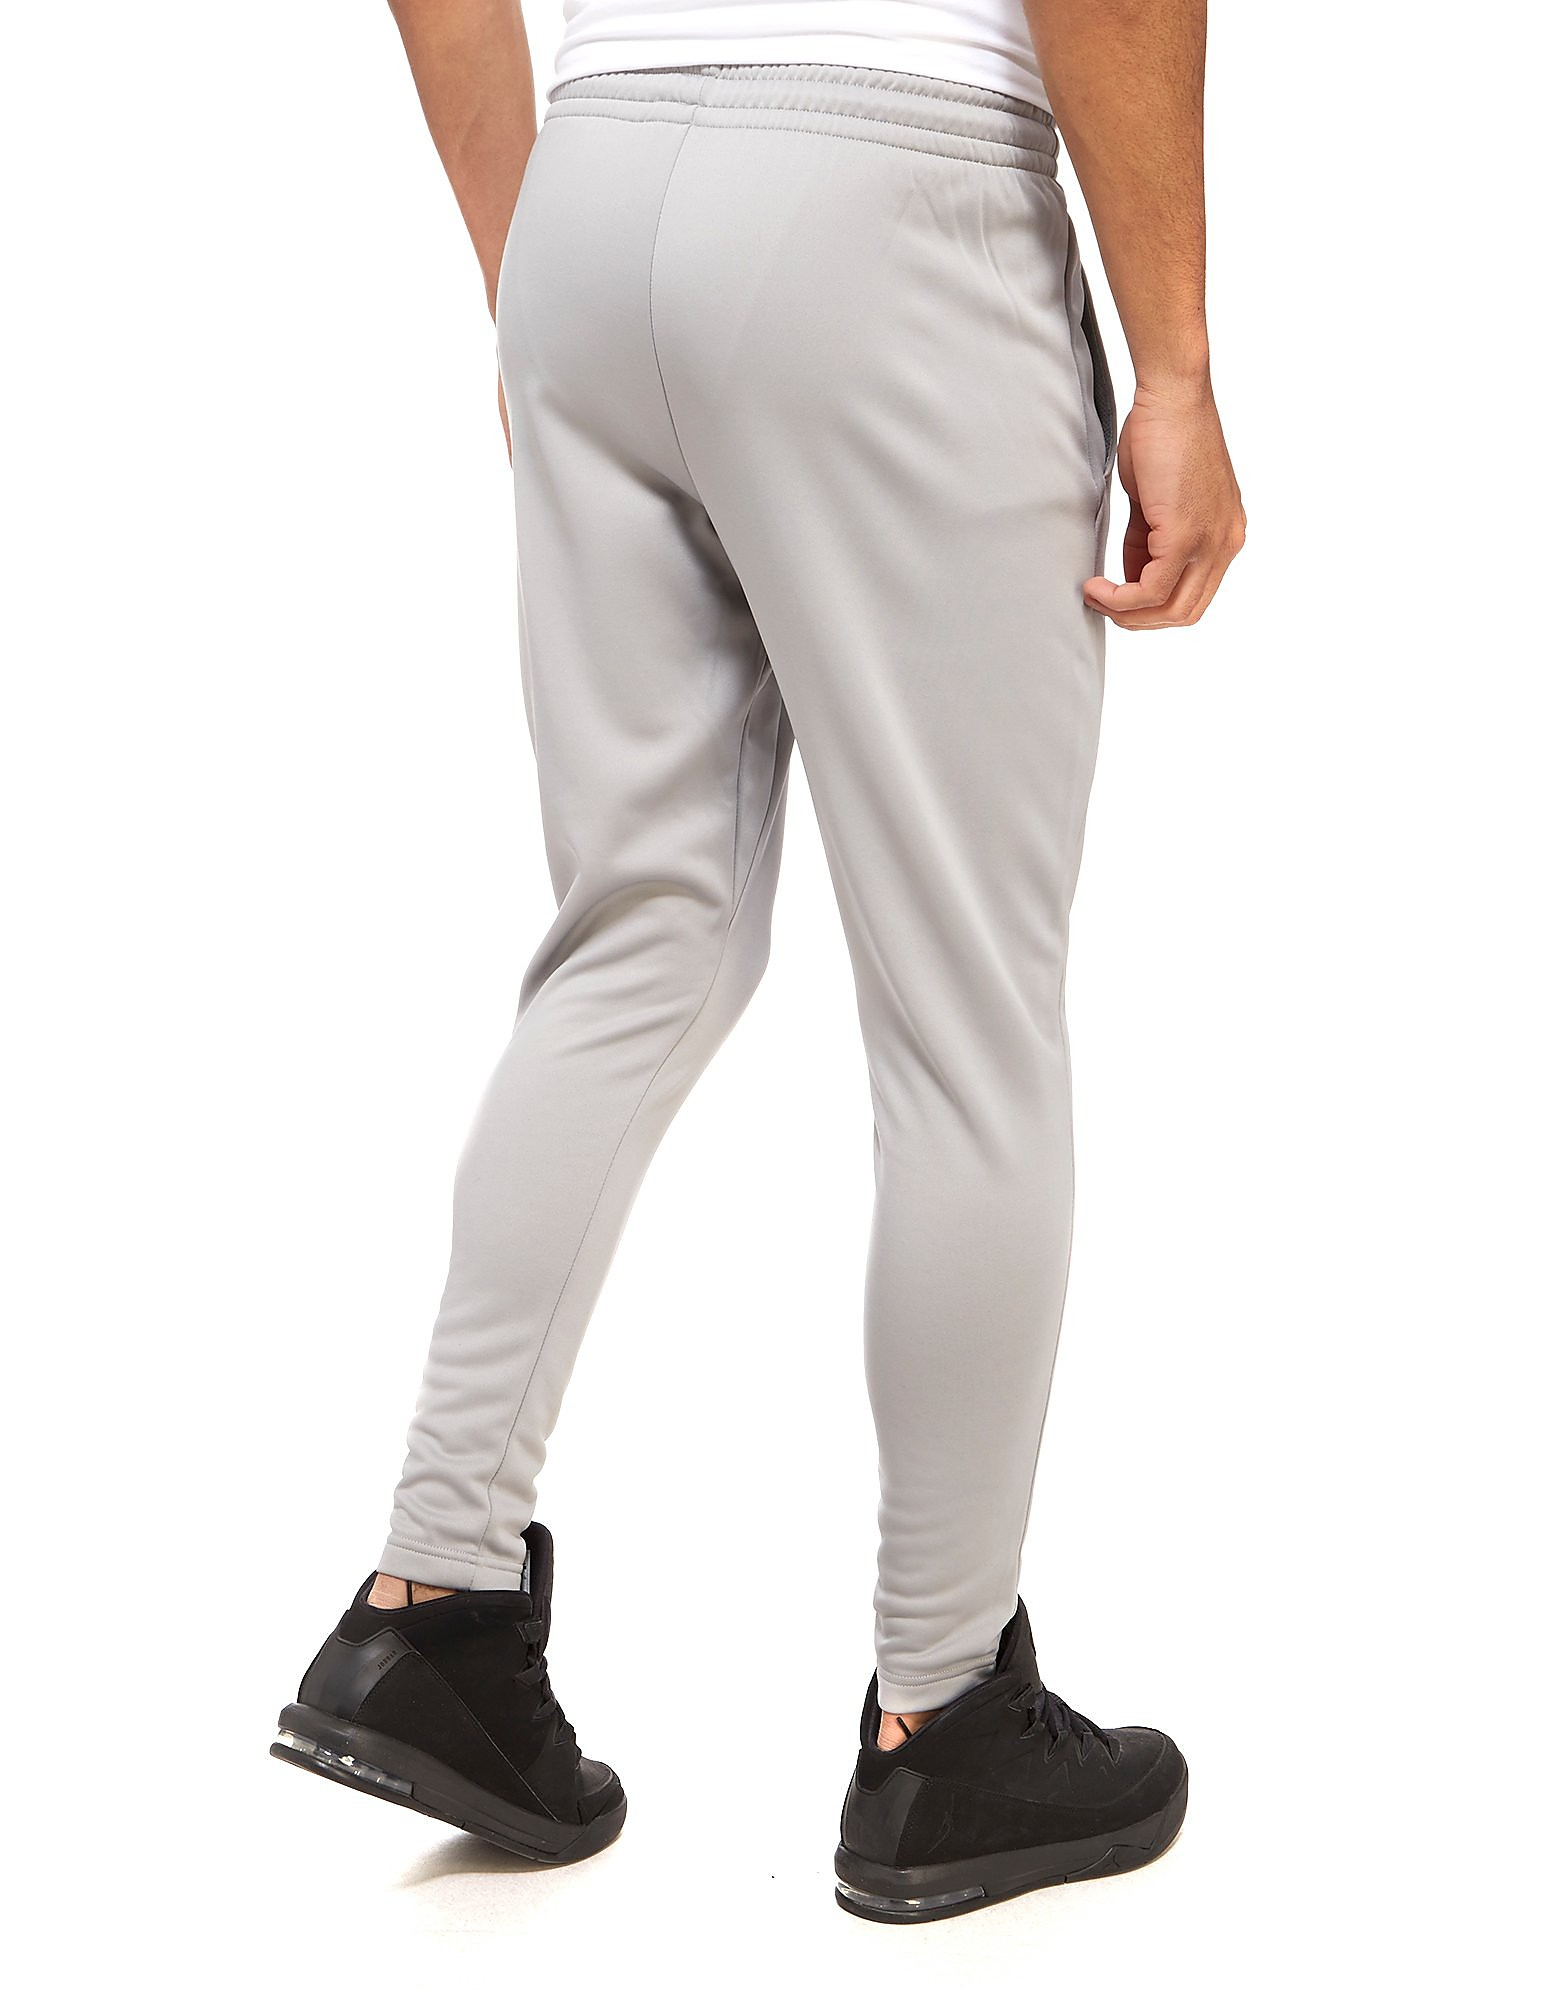 Jordan Therma 23 Alpha Pants